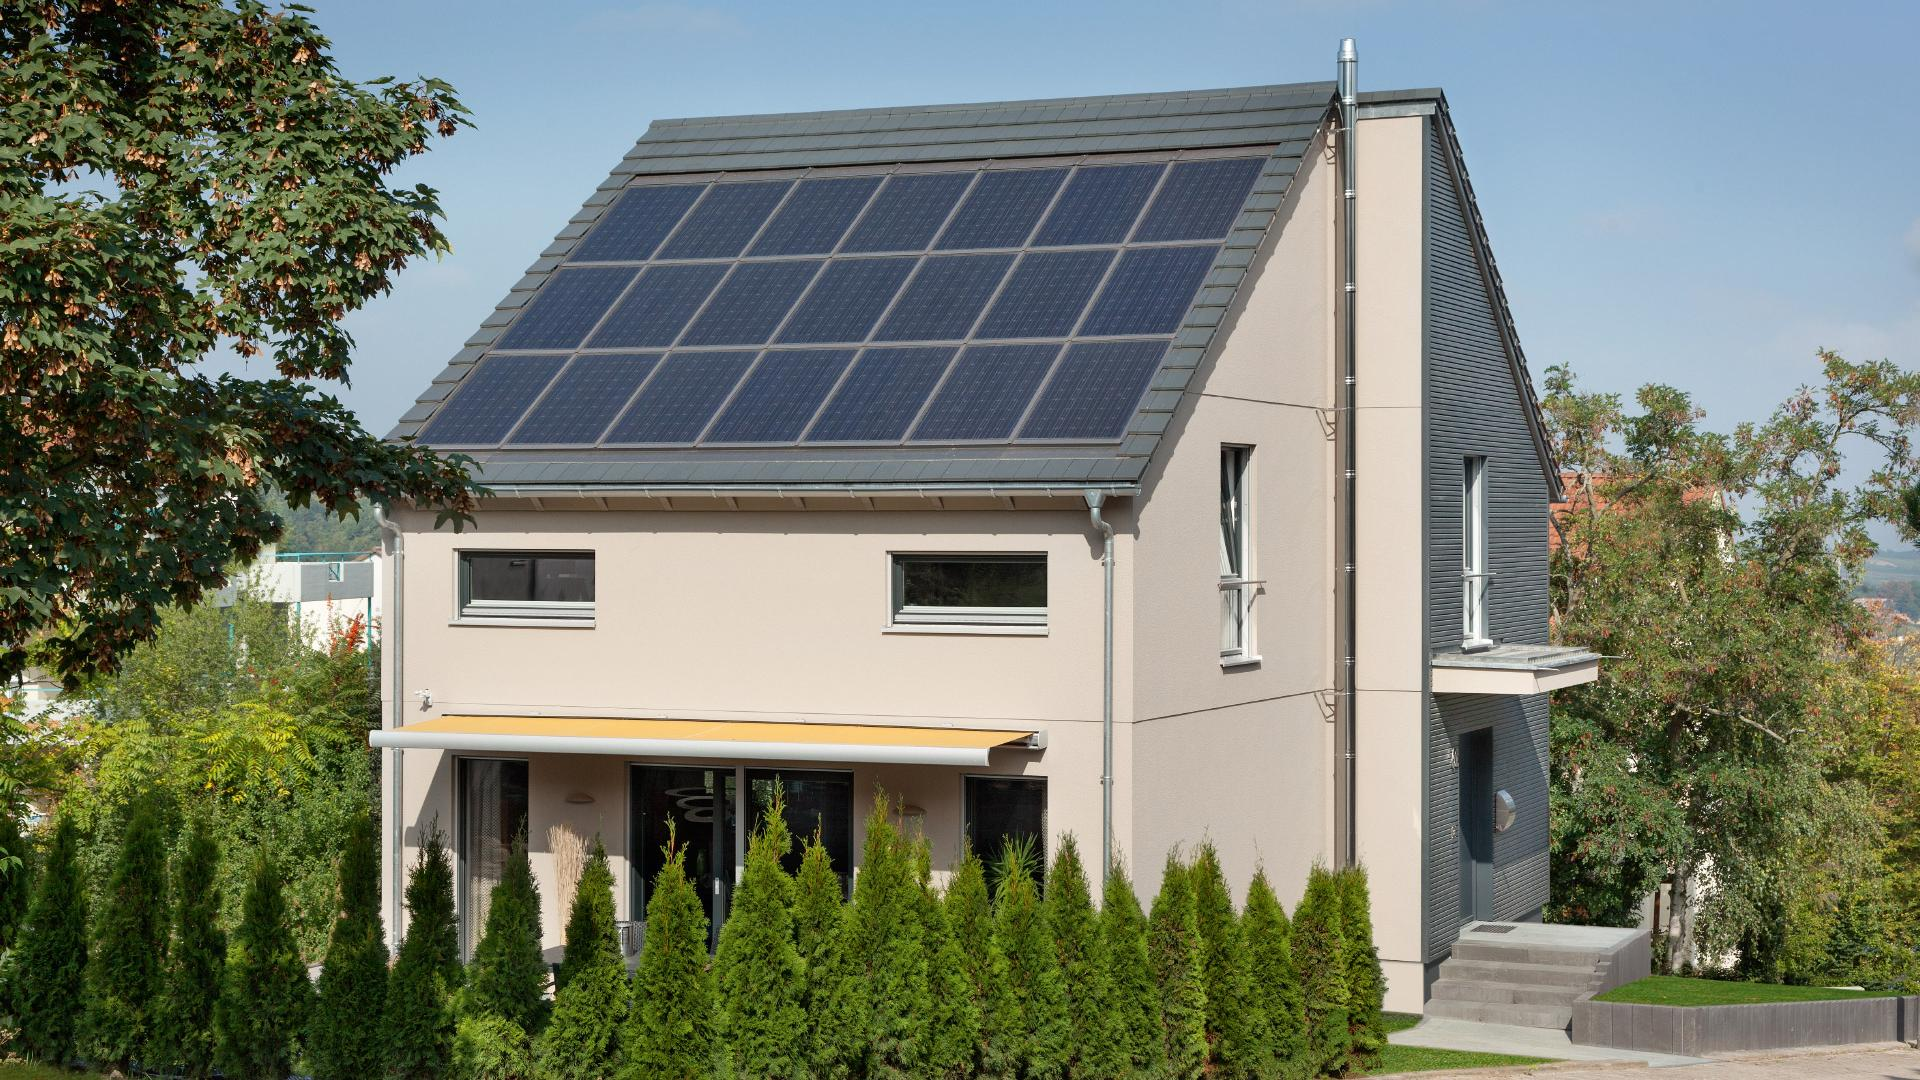 Plus energy house with photovoltaic in-roof system